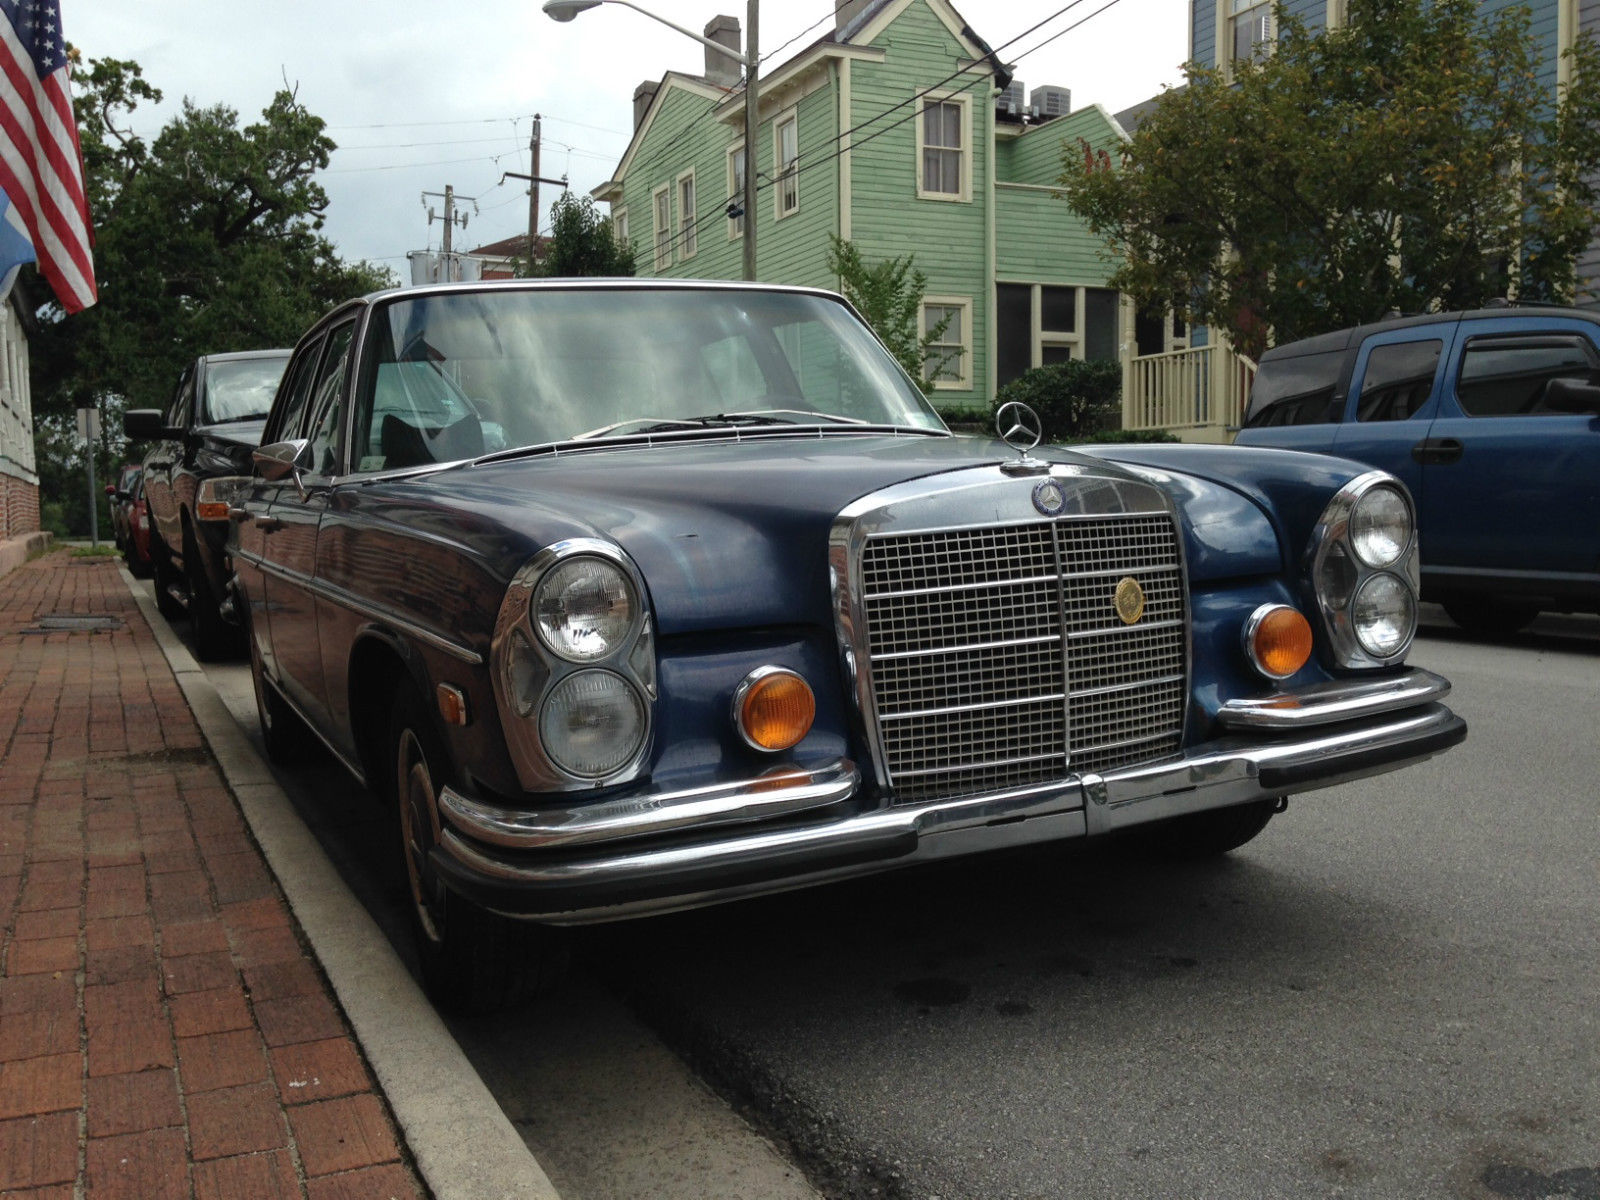 1968 mercedes benz 280se four door sedan navy blue for Mercedes benz 4 door